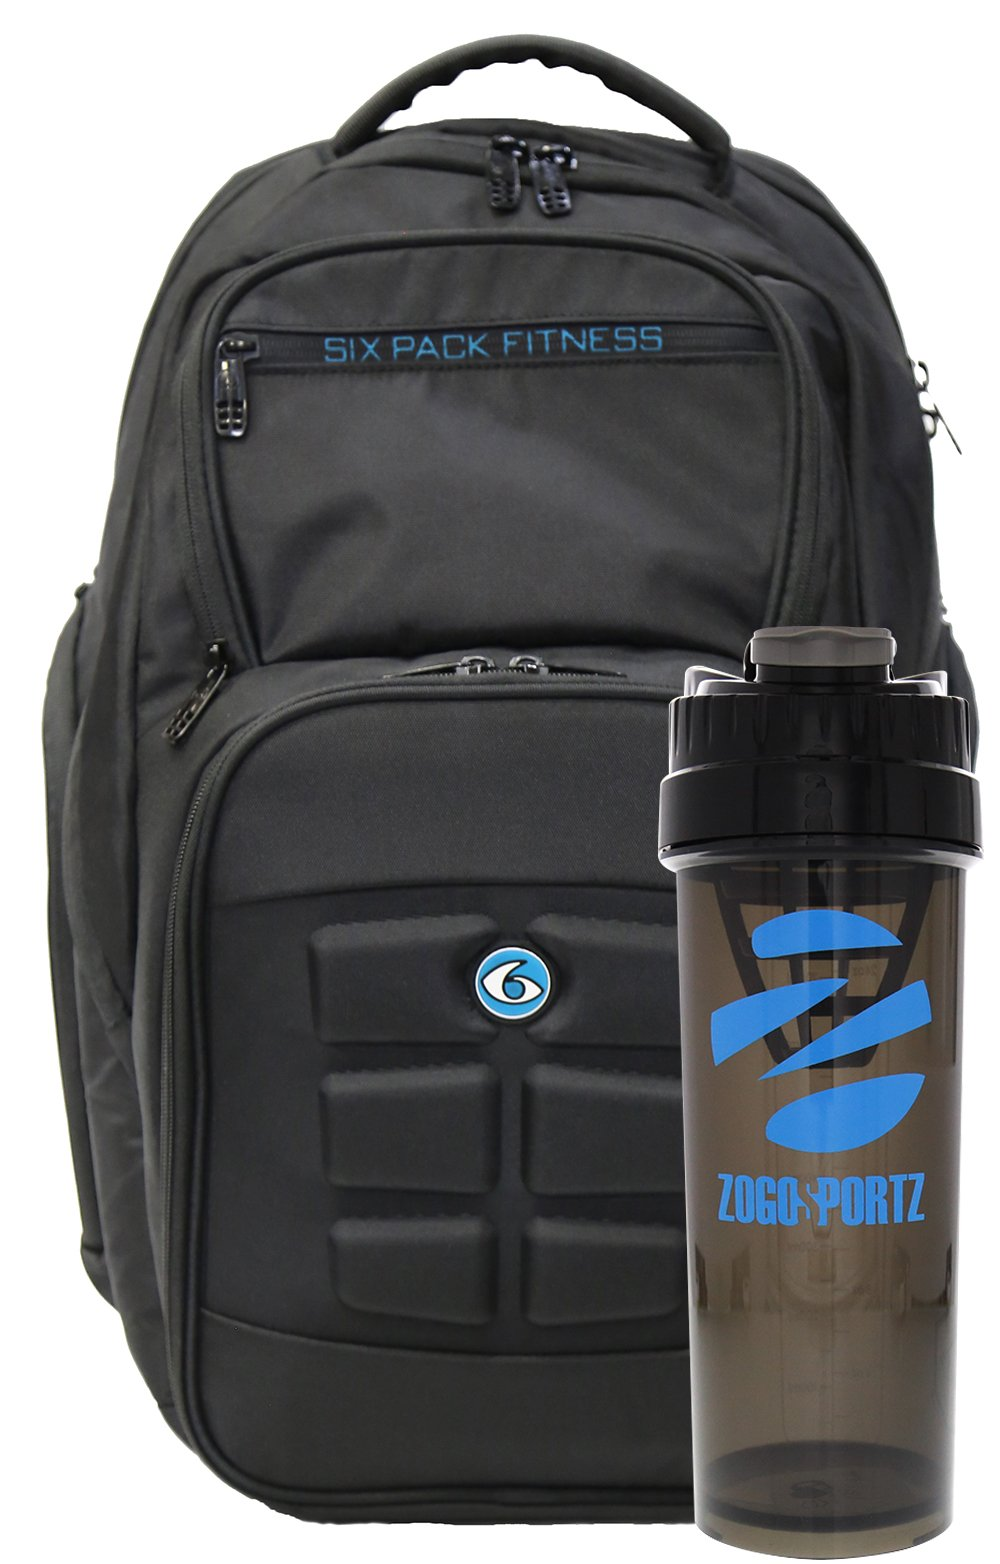 6 Pack Fitness Expedition Backpack W/ Removable Meal Management System 500 Black/Neon Blue w/ Bonus ZogoSportz Cyclone Shaker